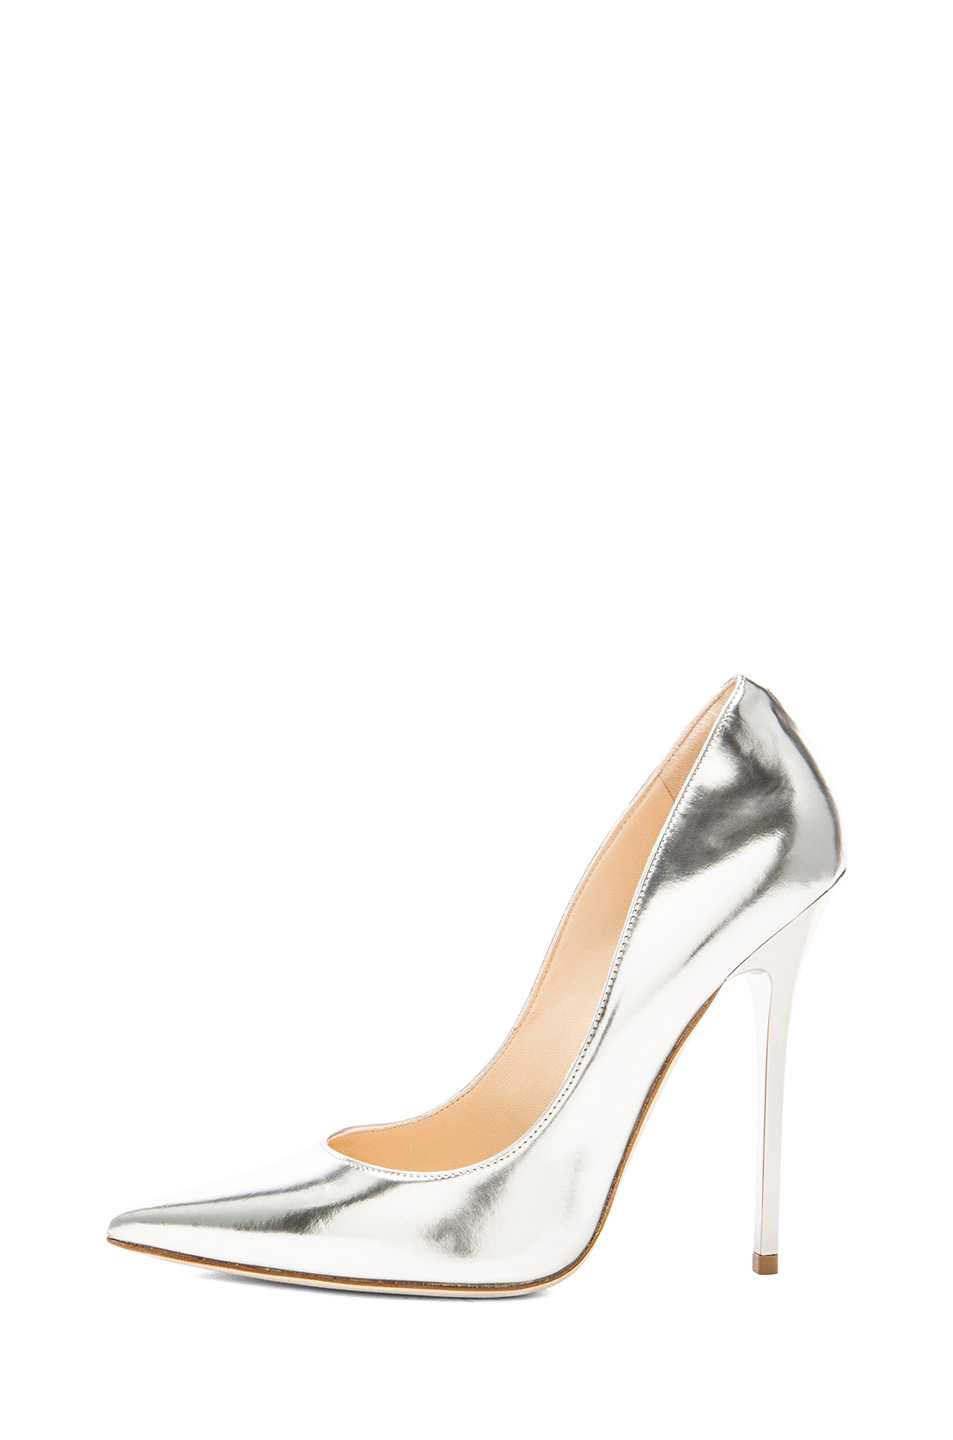 Jimmy Choo | Anouk Leather Pumps in Silver